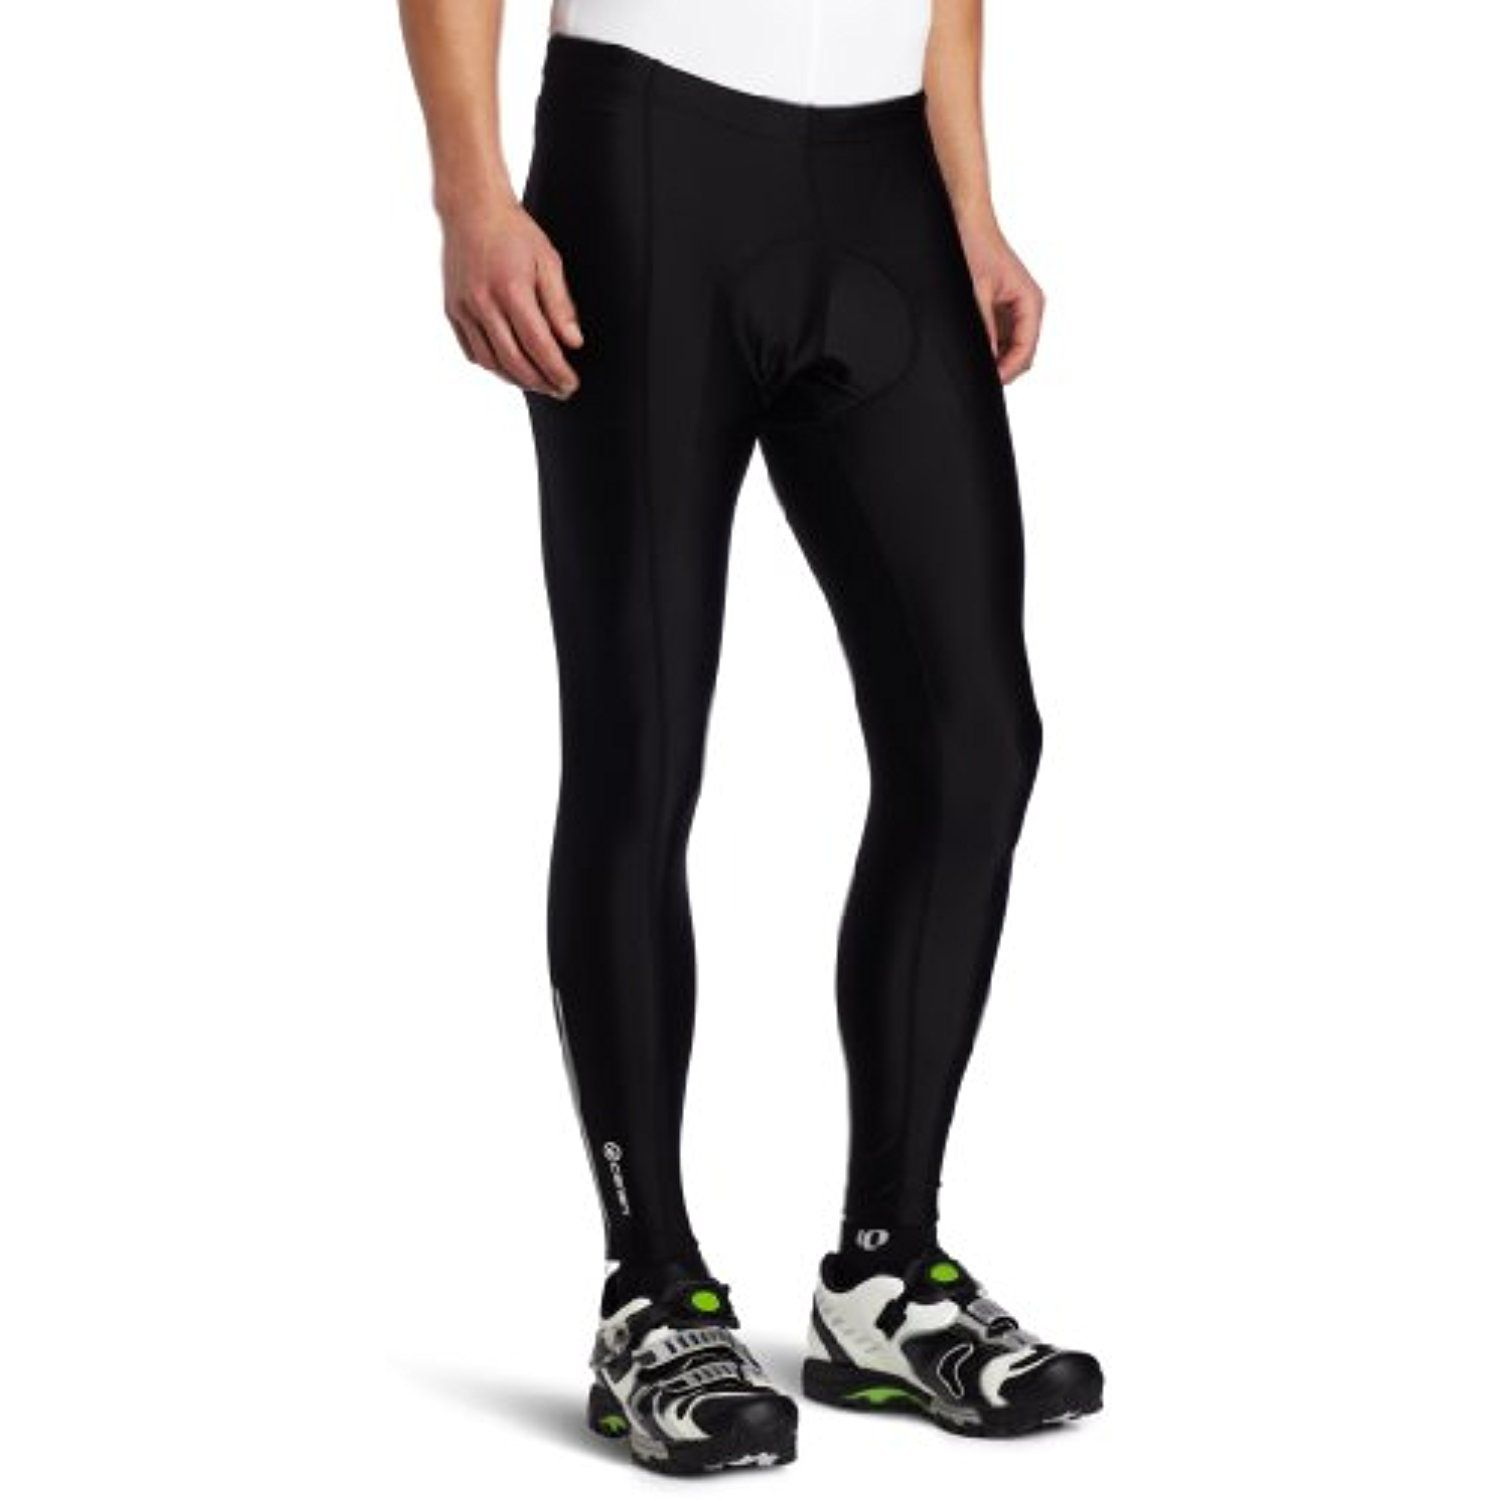 Canari Cyclewear Men s Pro Elite Gel Cycle Tight   You can find more  details by visiting the image link. (This is an affiliate link)  Clothing 9f5ed8fdd